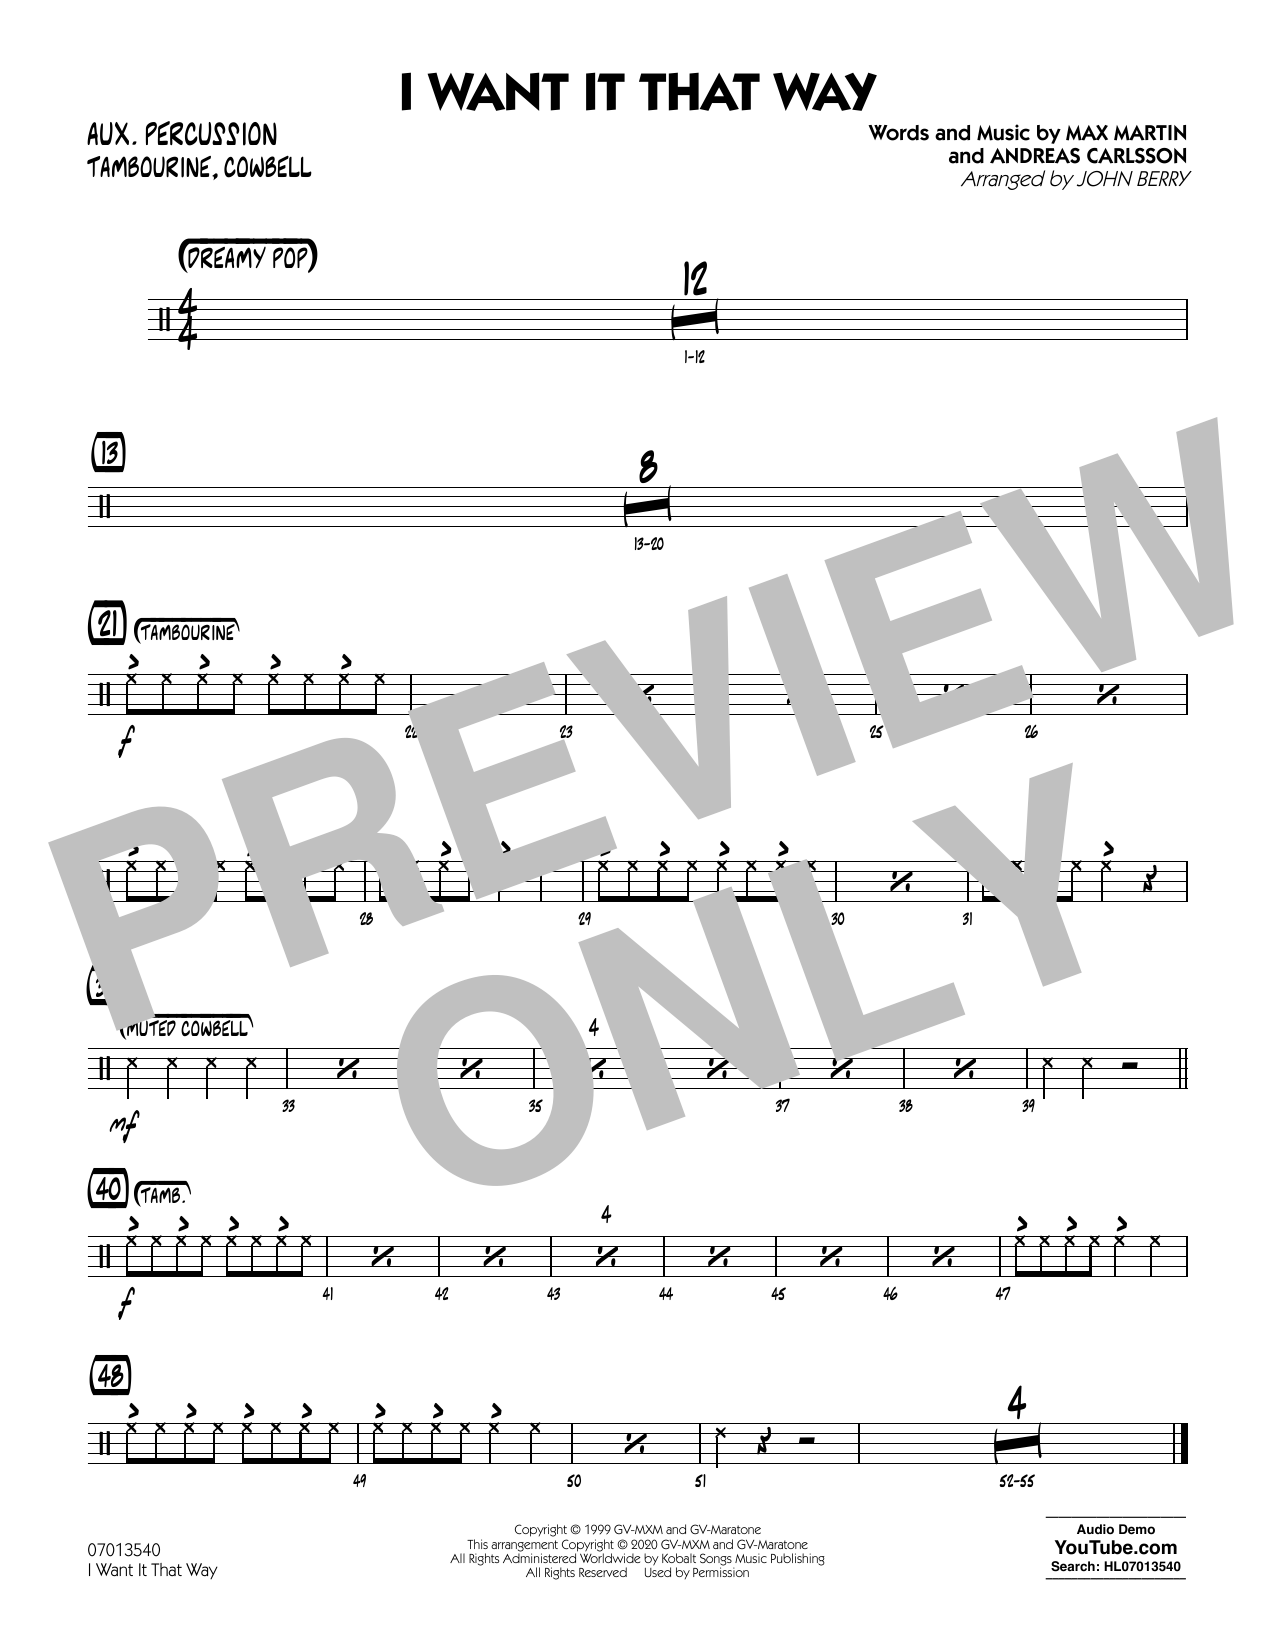 I Want It That Way (arr. John Berry) - Aux Percussion Sheet Music